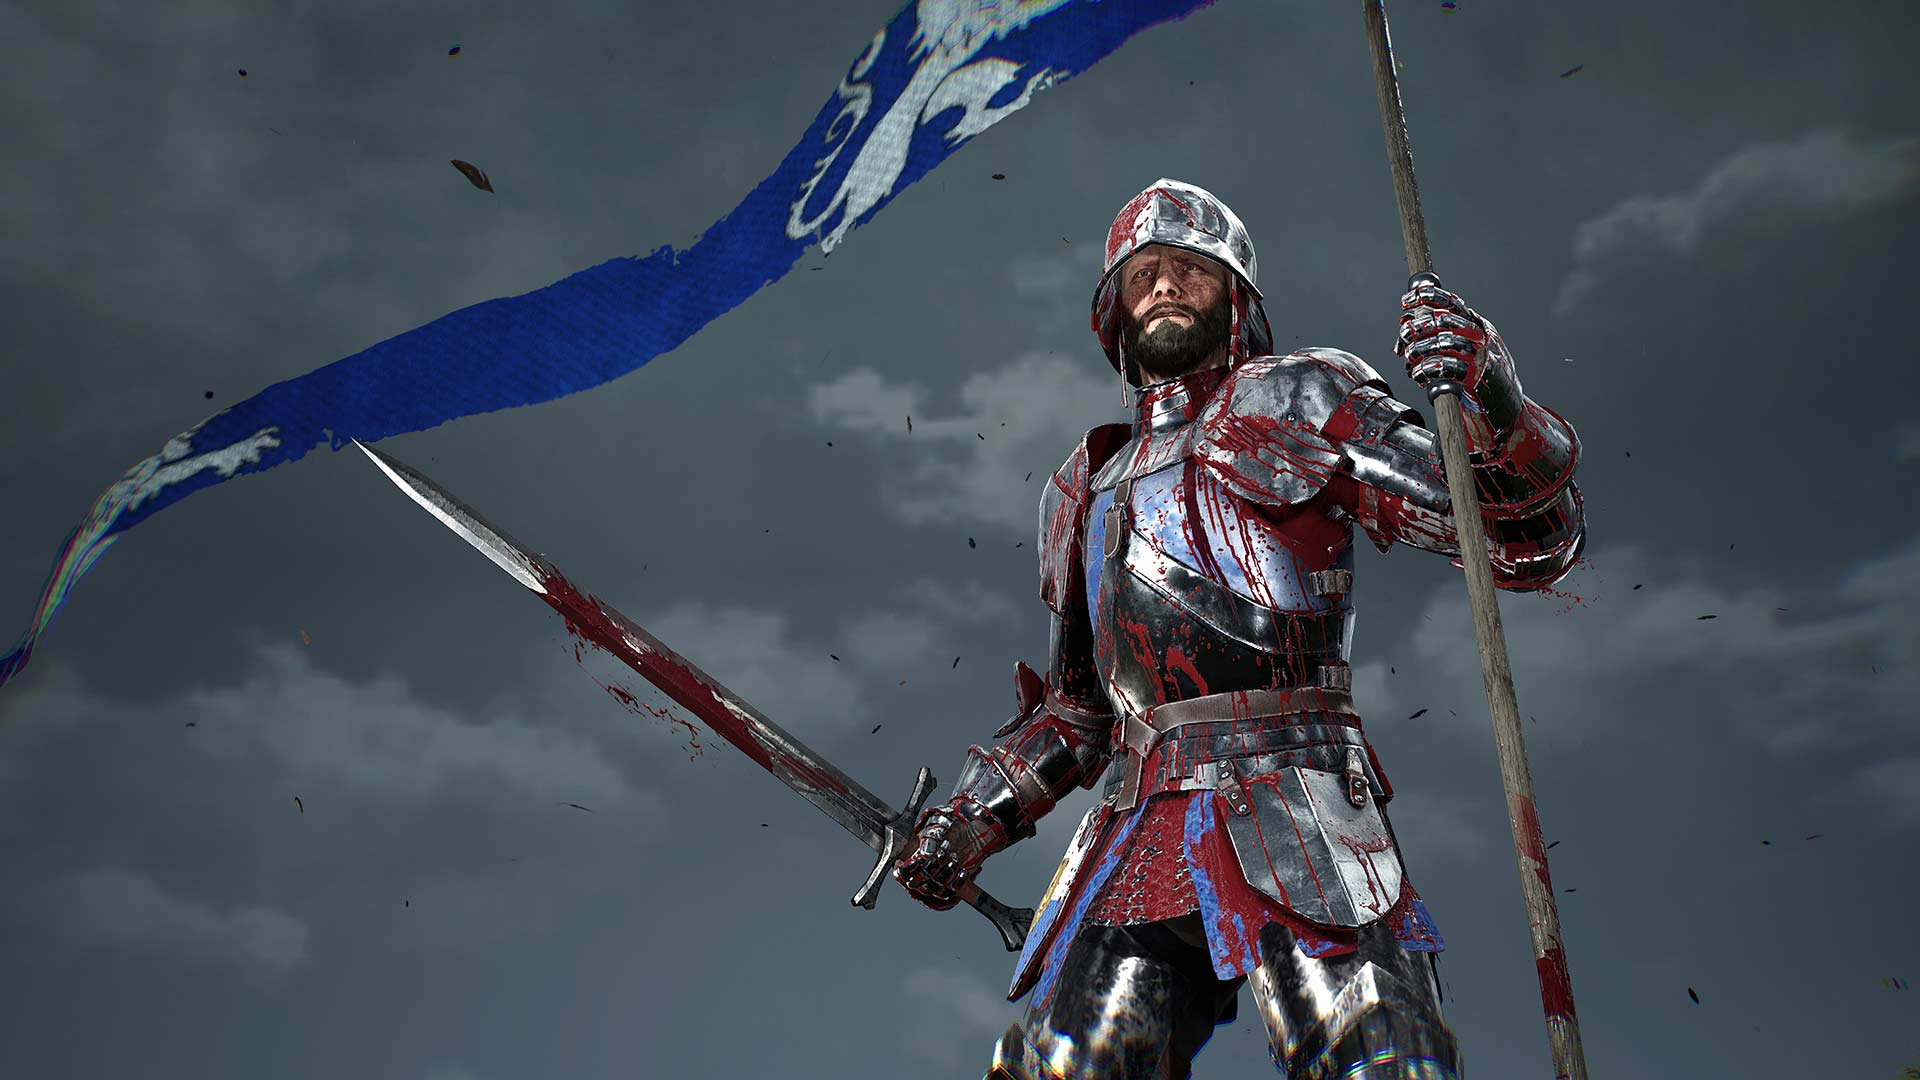 Chivalry-2-Man-With-Flag-and-Sword